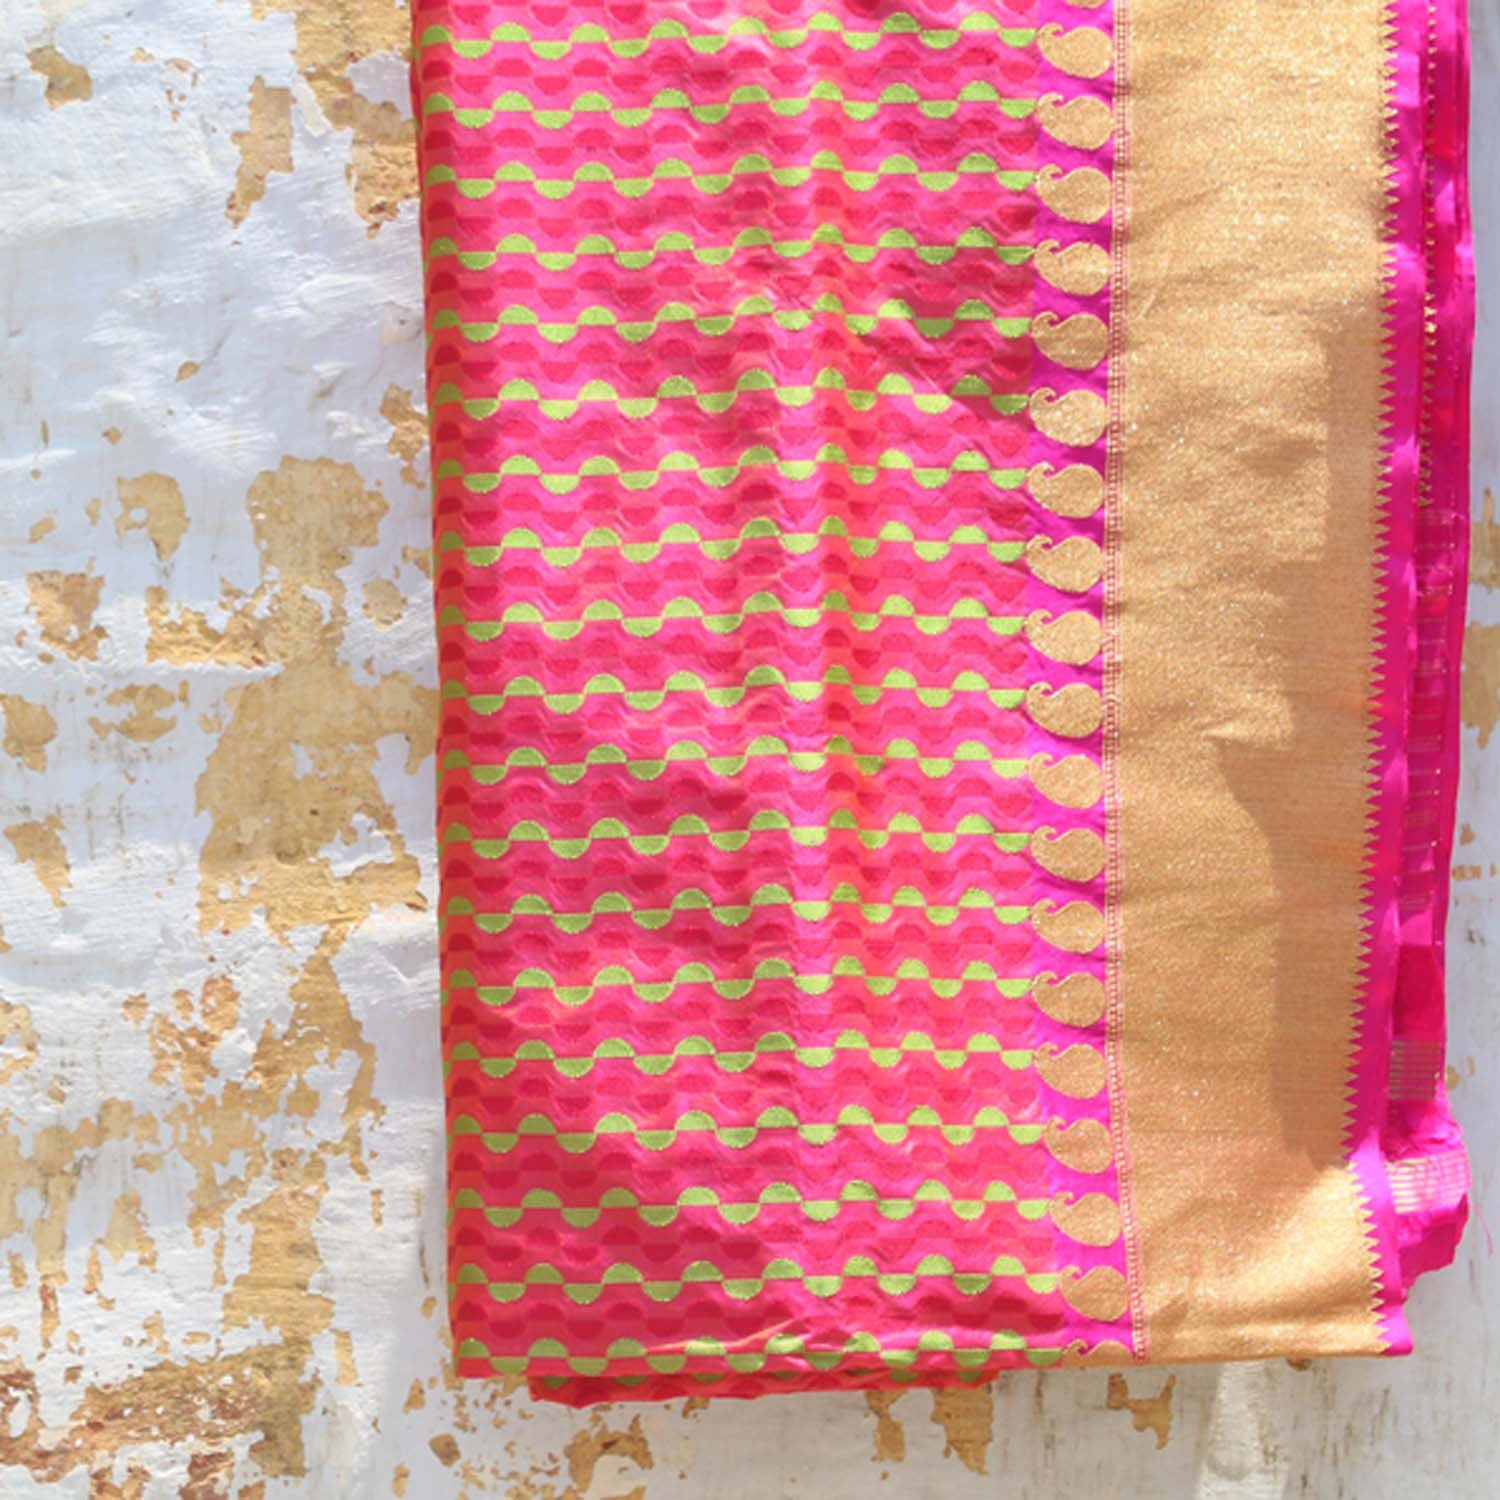 Indian Pink-Orange Pure Katan Silk Banarasi Handloom Saree - Tilfi - 1